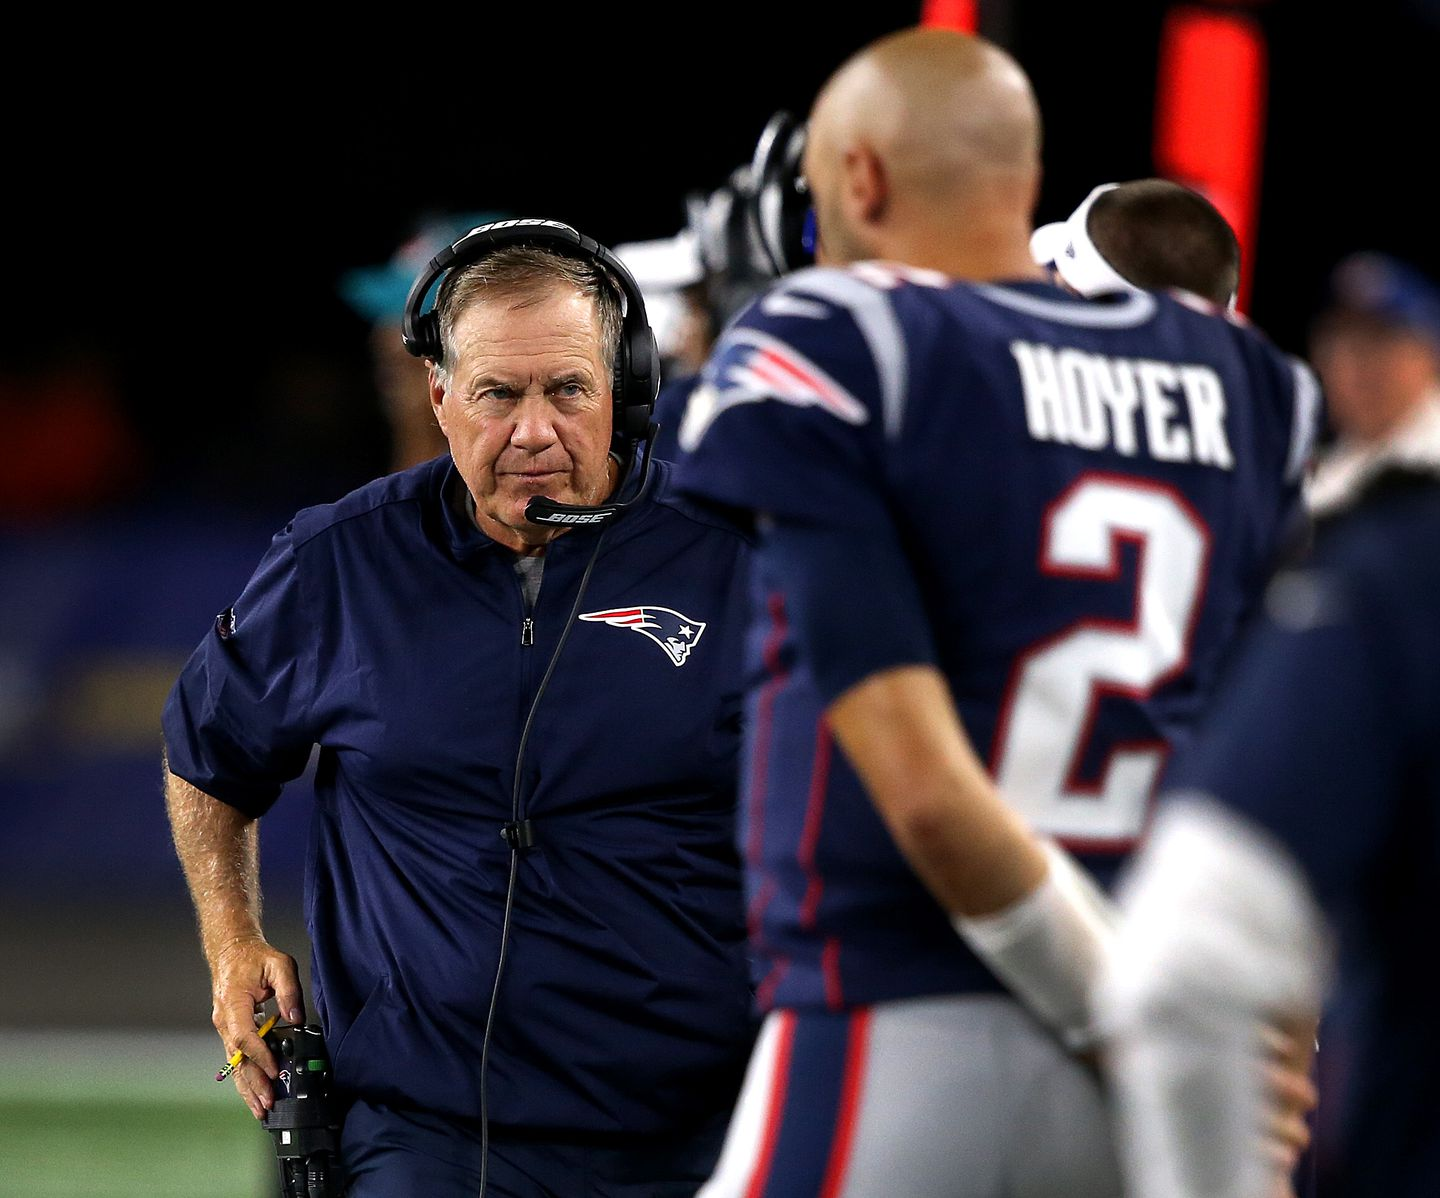 Bill Belichick And The Patriots Are Always Happy To Let Other Teams Pay Their Employees The Boston Globe